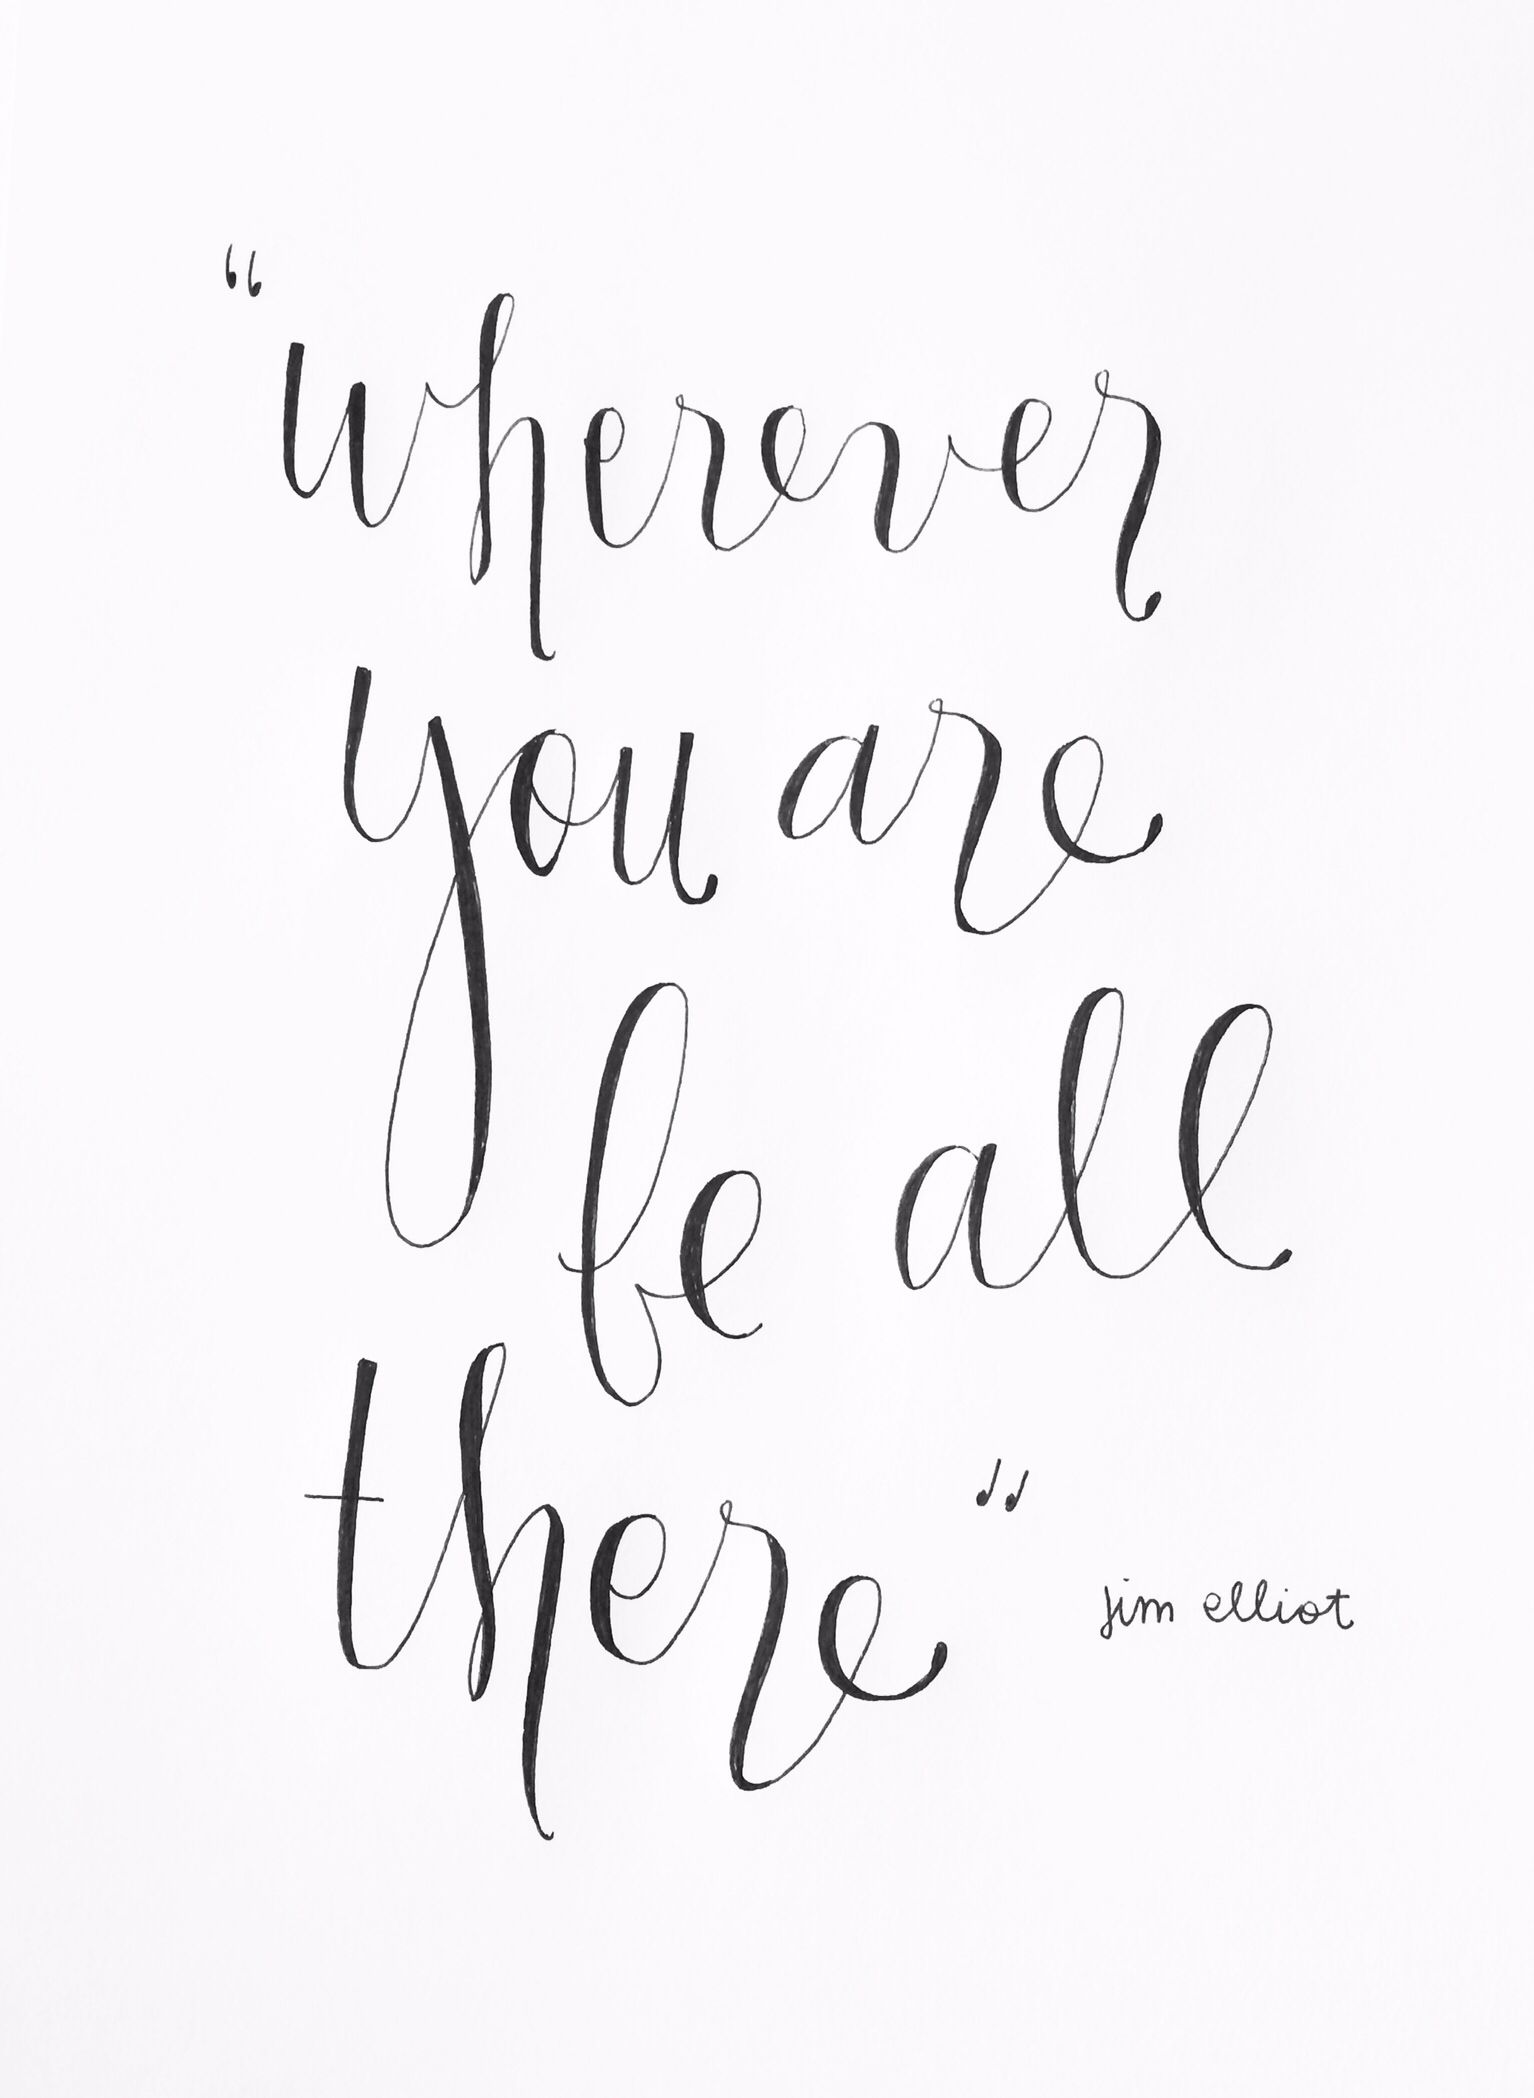 Wherever you are be all there jim elliot hand drawn type by melissa horrocks